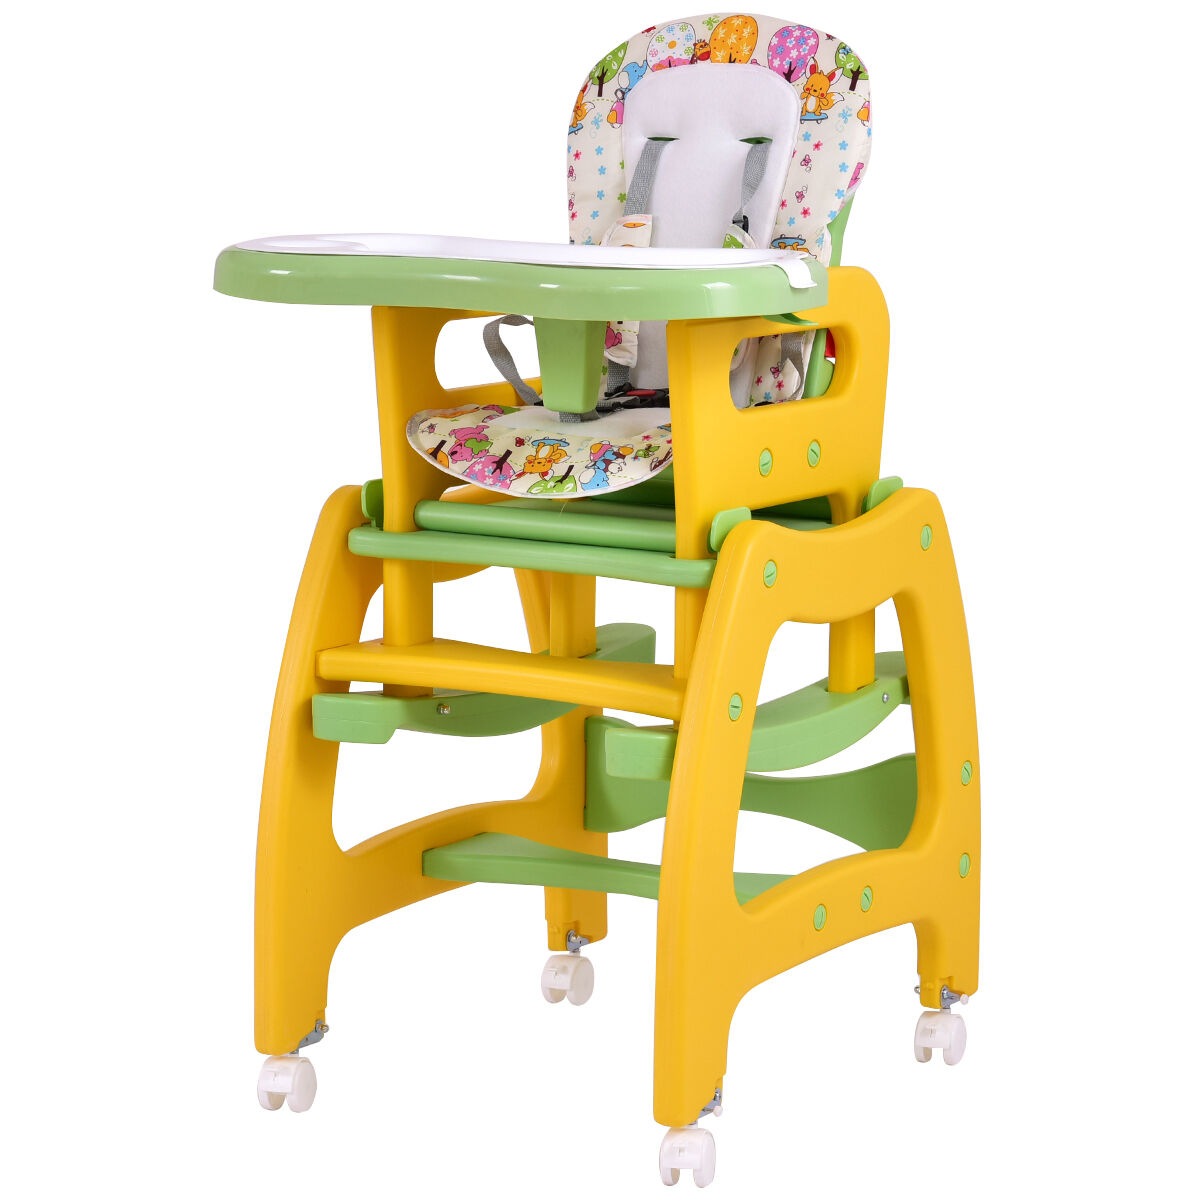 chair ebay. 3 in 1 baby high chair convertible play table seat booster toddler feeding tray ebay